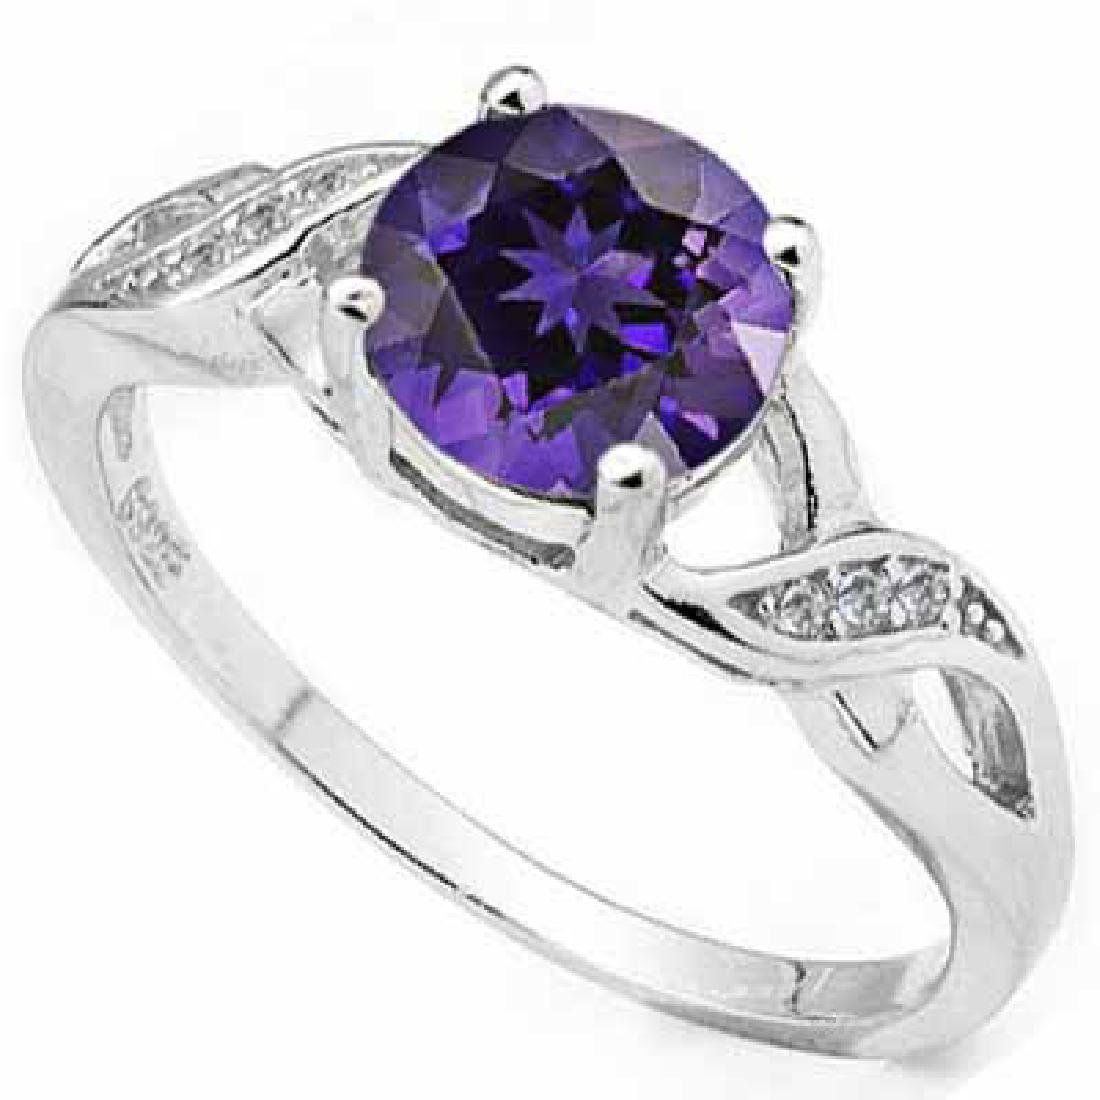 1 1/5 CARAT AMETHYST & (6 PCS) FLAWLESS CREATED DIAMOND